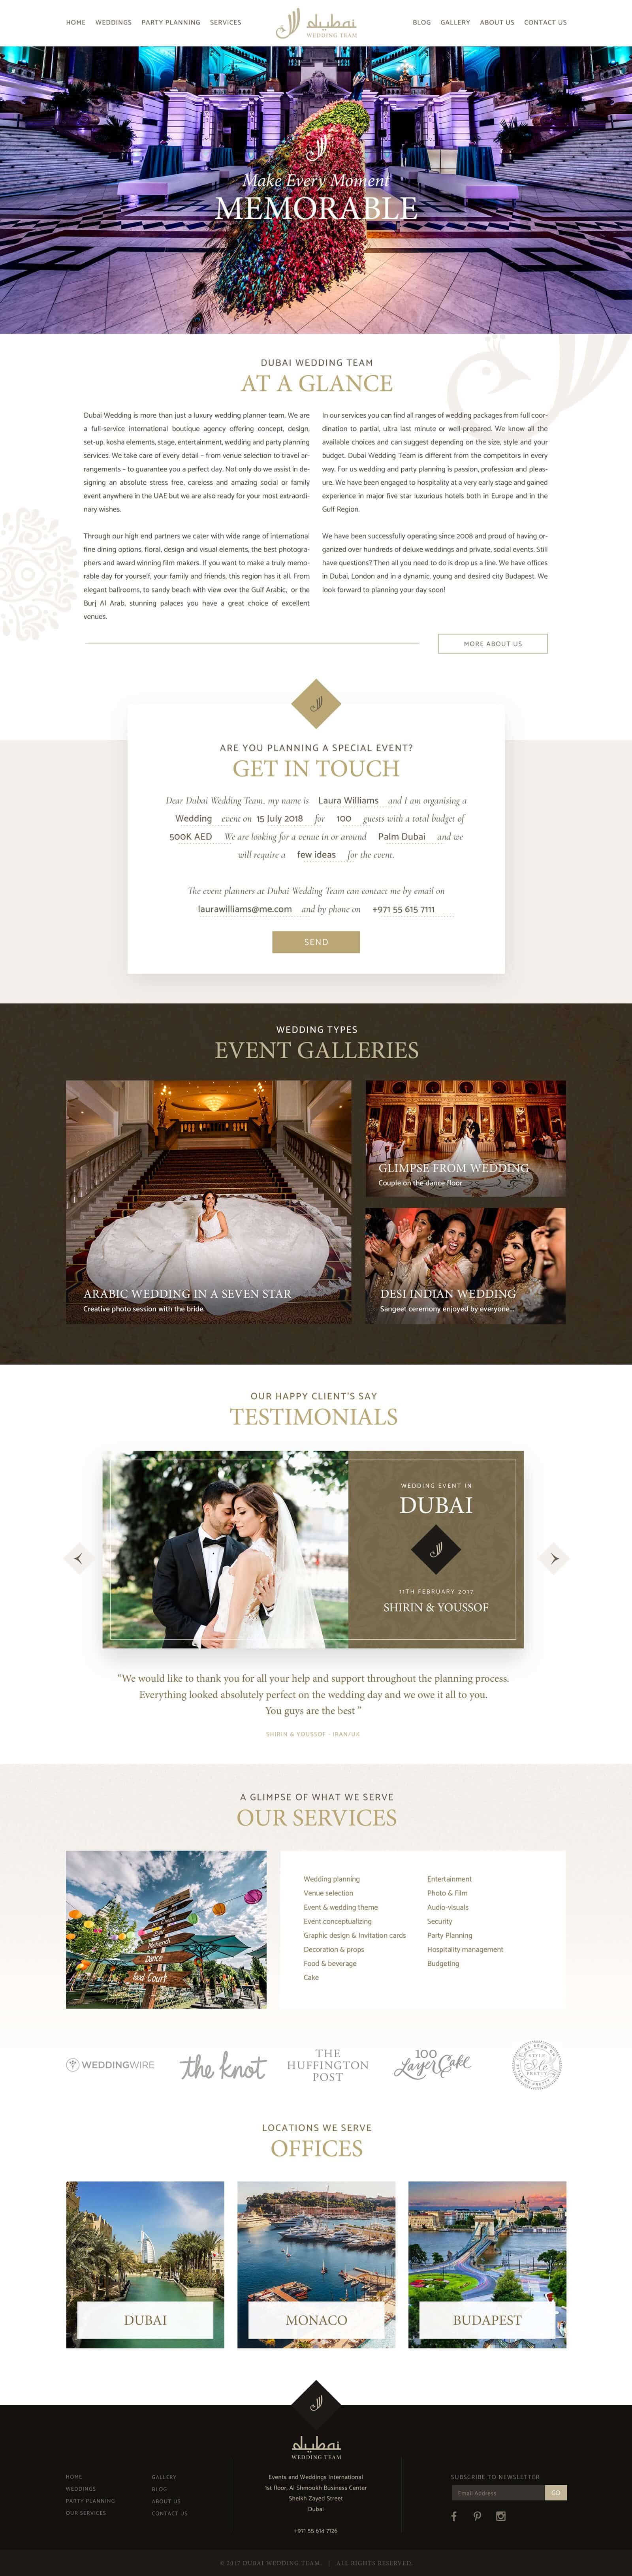 Website Design for Wedding Event Planners in Dubai